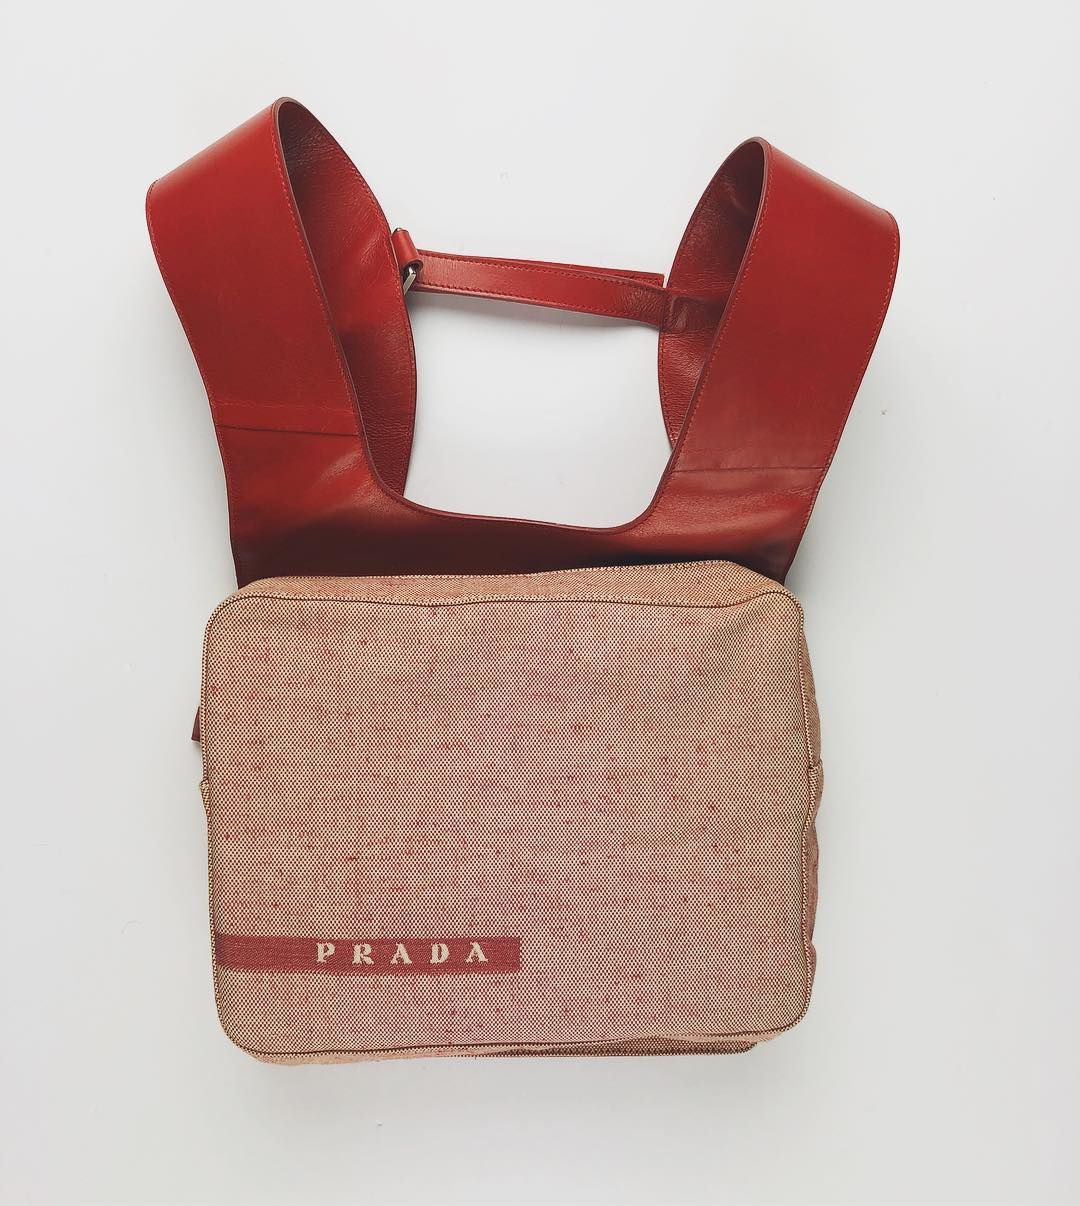 a393a7865c49 Prada Chest Rig/Backpack Circa 1999 (Red) | StolenBeauty in 2019 ...